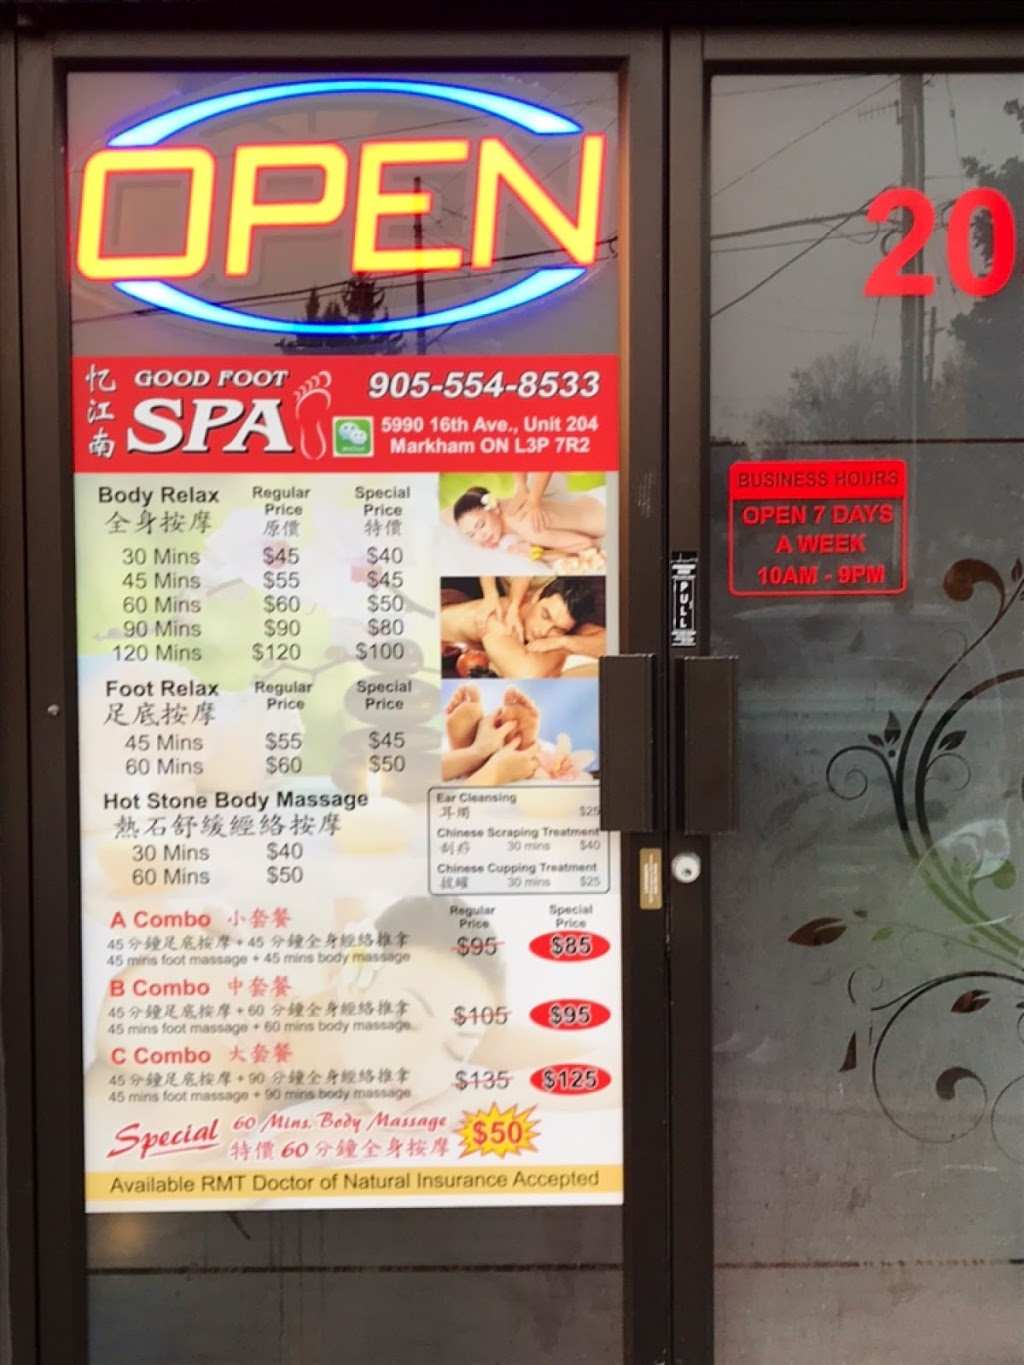 Good Foot Spa 忆江南 | spa | 5990 16th Ave #204, Markham, ON L3P 7R2, Canada | 9055548533 OR +1 905-554-8533